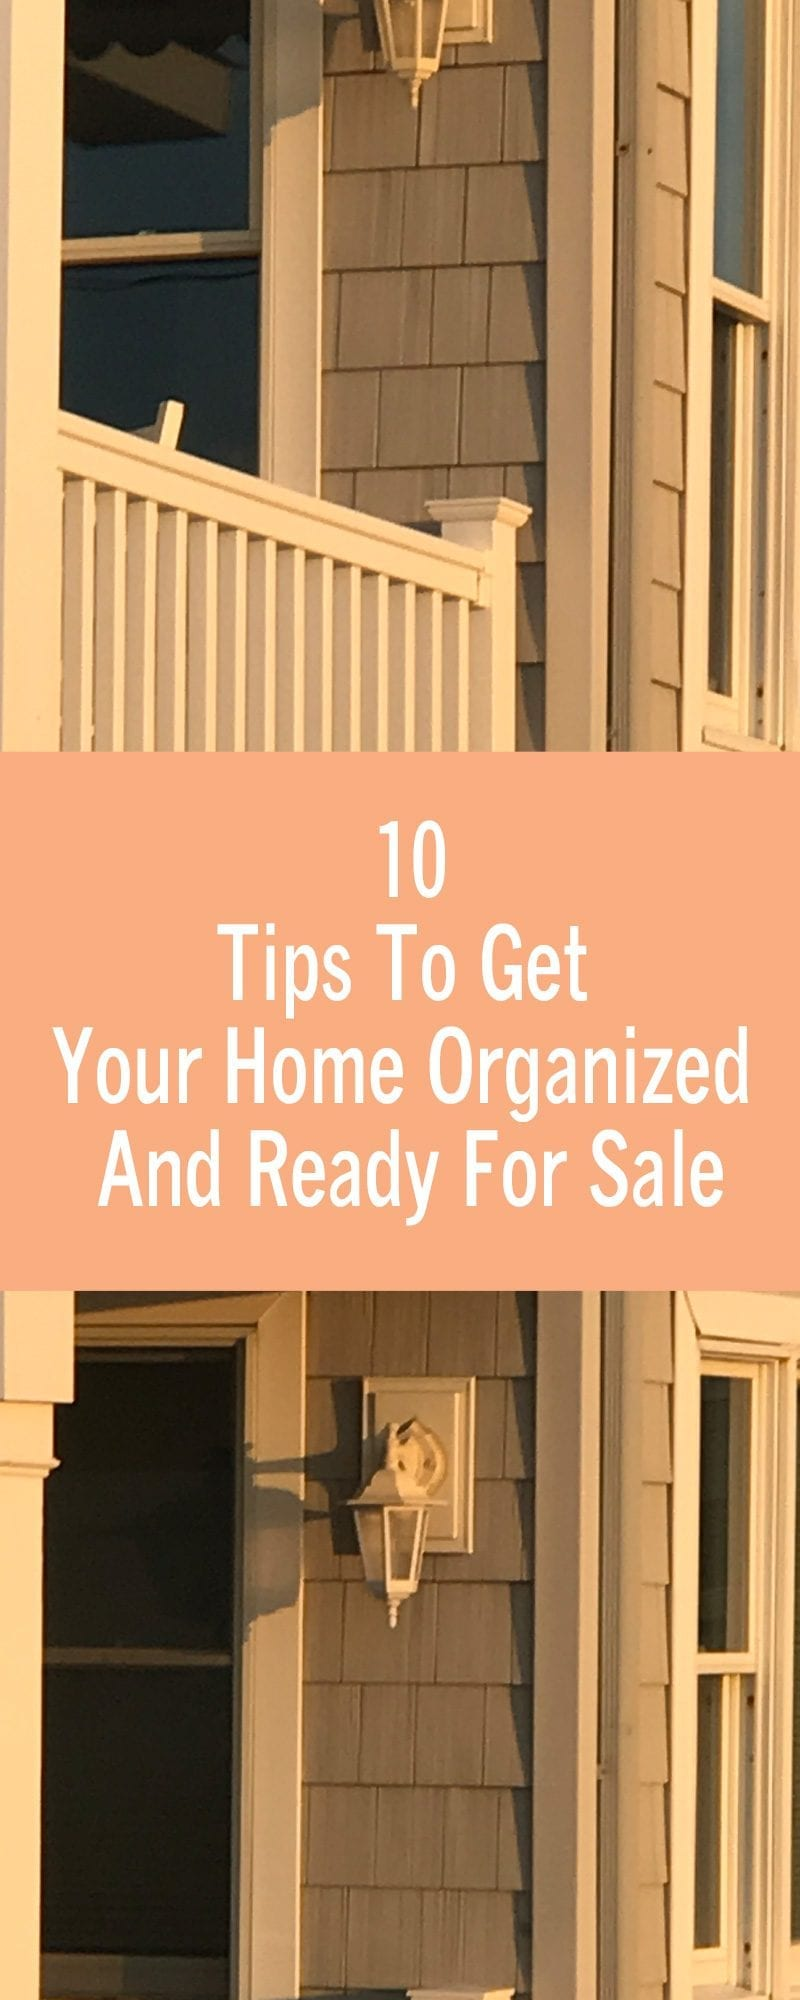 10 Tips To Get Your Home Organized And Ready For Sale